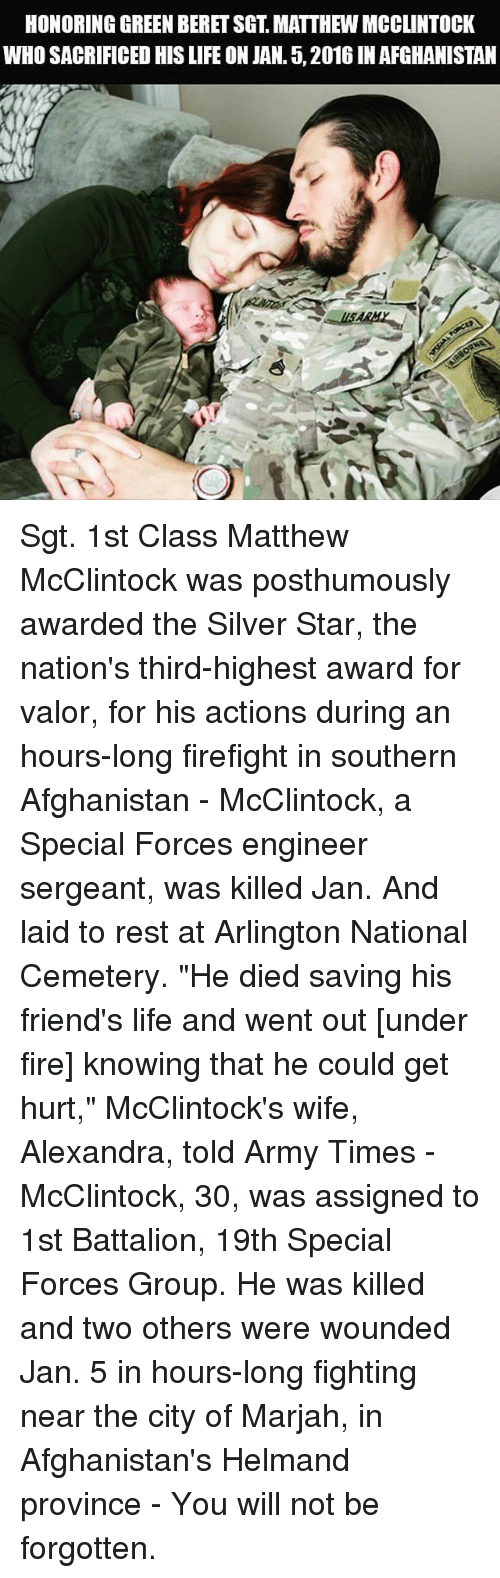 "Fire, Friends, and Life: HONORING GREEN BERET SGT, MATTHEW MCCLINTOCK  WHO SACRIFICED HIS LIFE ON JAN. 5, 2016 IN AFGHANISTAN Sgt. 1st Class Matthew McClintock was posthumously awarded the Silver Star, the nation's third-highest award for valor, for his actions during an hours-long firefight in southern Afghanistan - McClintock, a Special Forces engineer sergeant, was killed Jan. And laid to rest at Arlington National Cemetery. ""He died saving his friend's life and went out [under fire] knowing that he could get hurt,"" McClintock's wife, Alexandra, told Army Times - McClintock, 30, was assigned to 1st Battalion, 19th Special Forces Group. He was killed and two others were wounded Jan. 5 in hours-long fighting near the city of Marjah, in Afghanistan's Helmand province - You will not be forgotten."